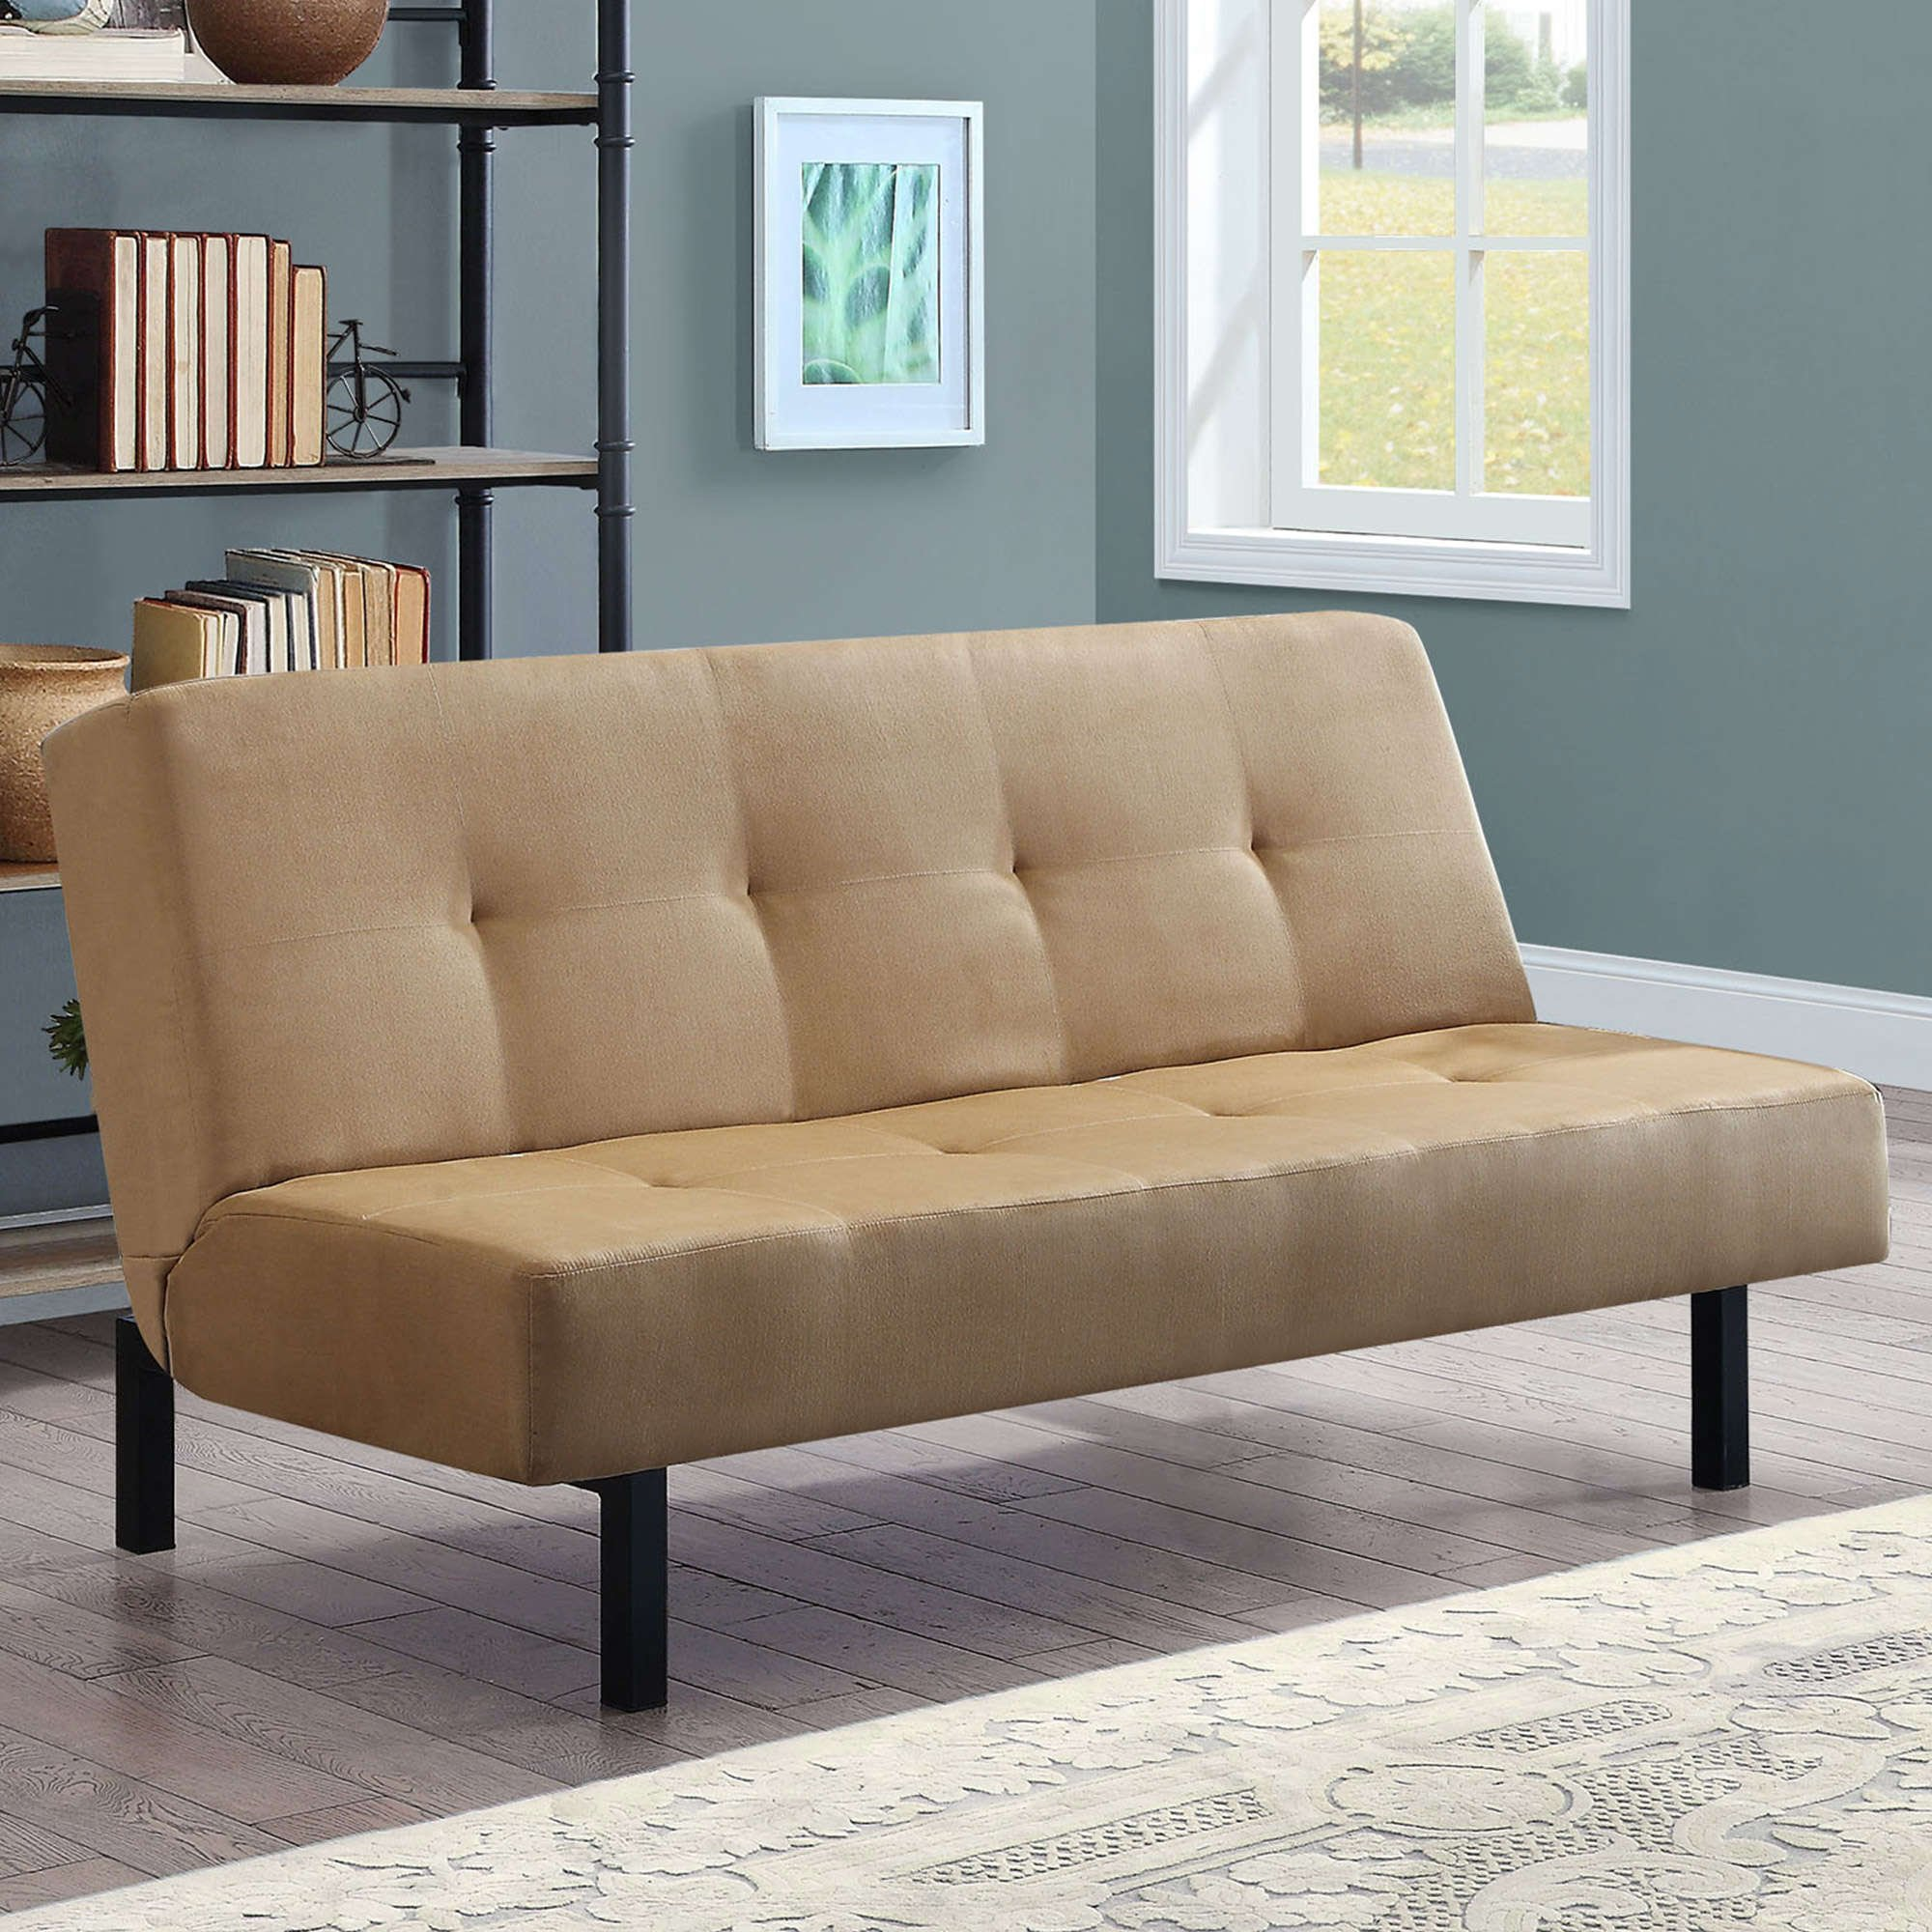 Mainstays 65'' 3-Position Tufted Futon, Tan by Mainstays...